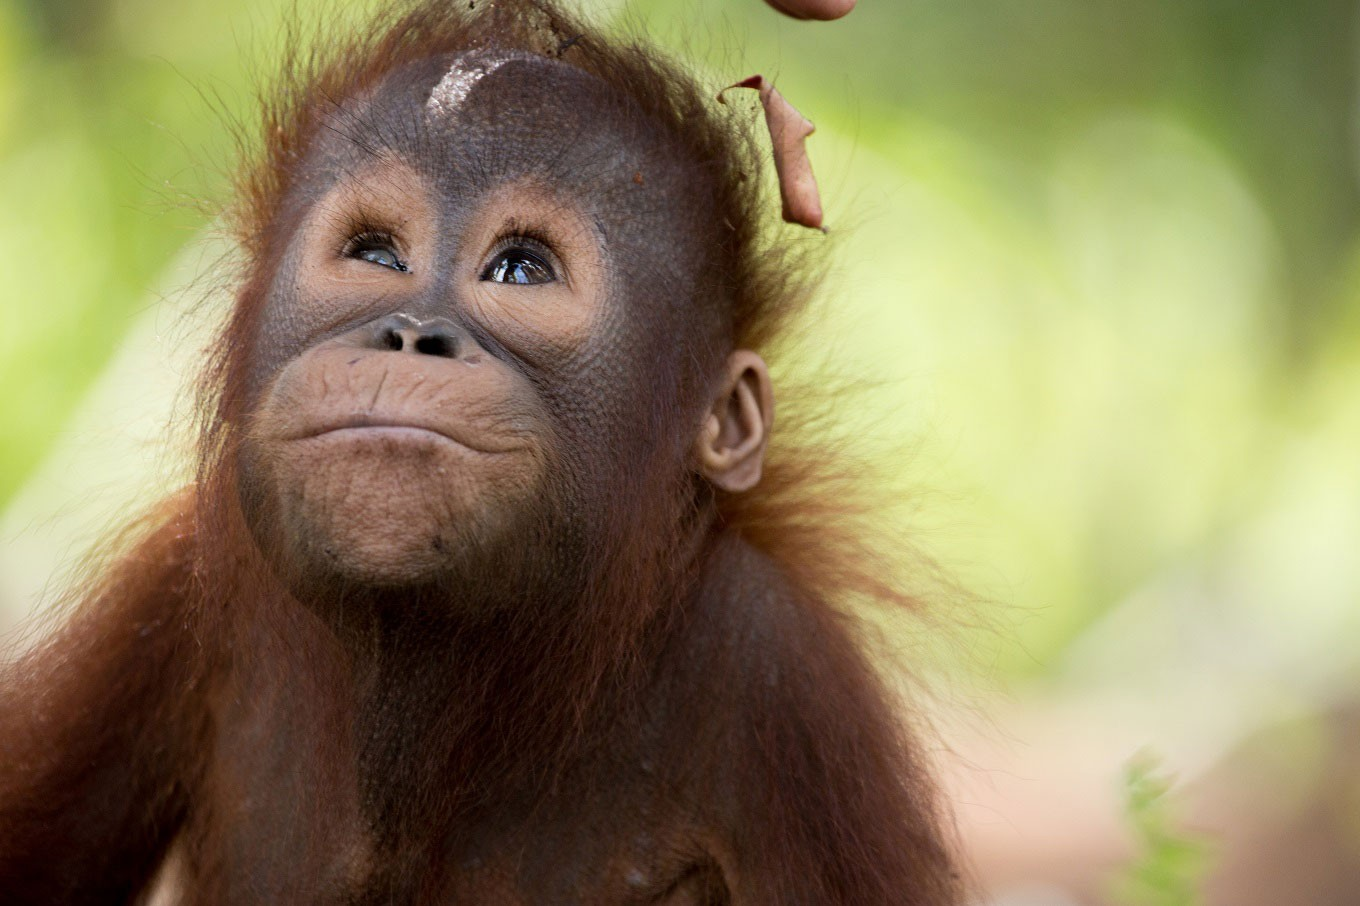 'I am the Forest' exhibition reveals Kalimantan's magnificent wildlife